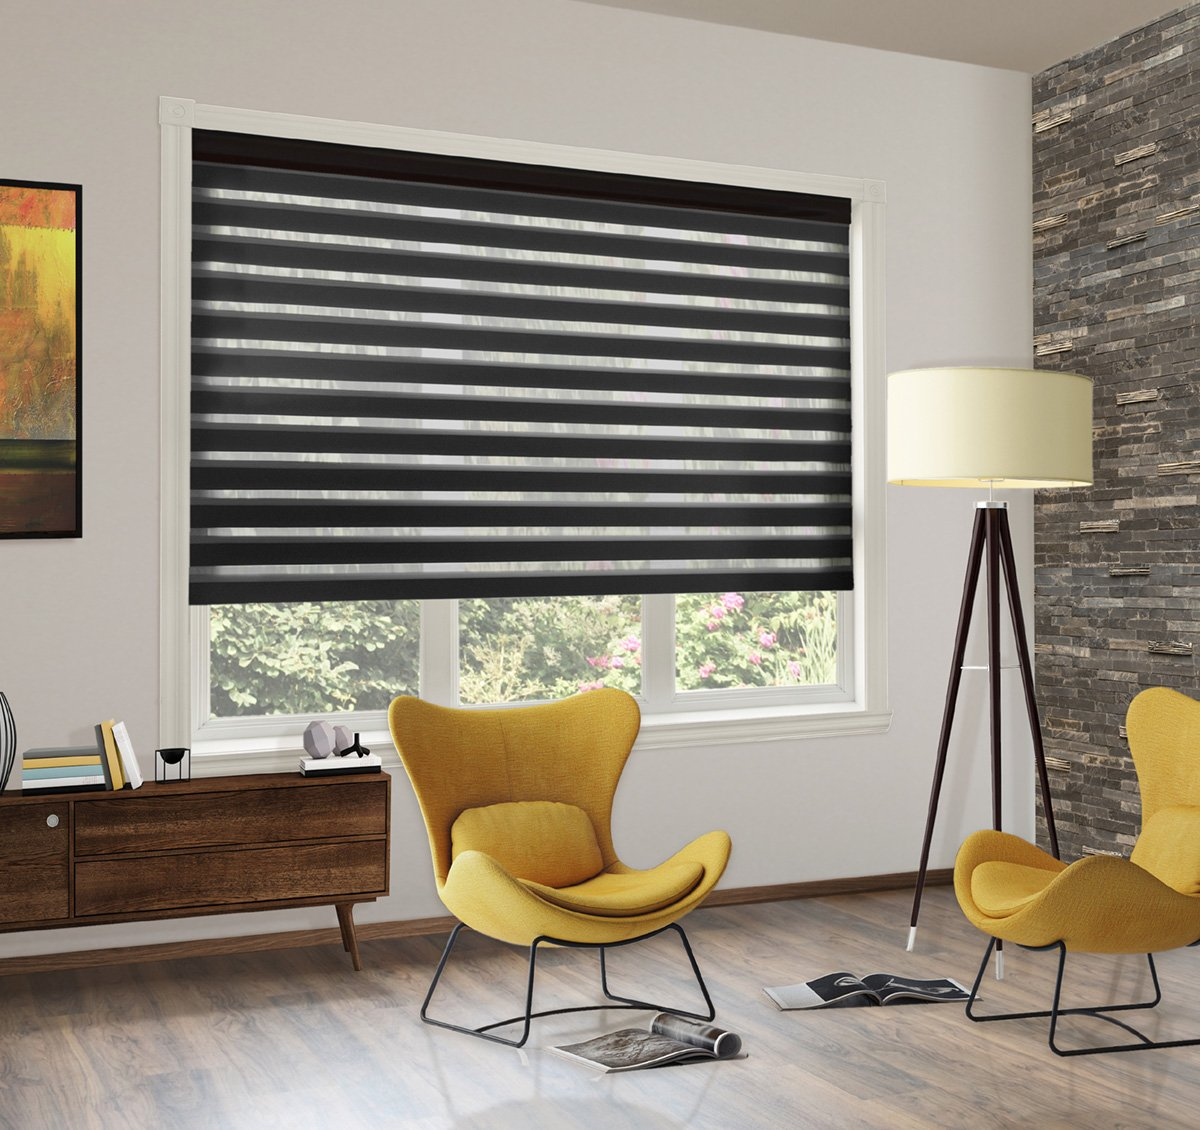 VALE Dimo Multishade/Duorol Blind